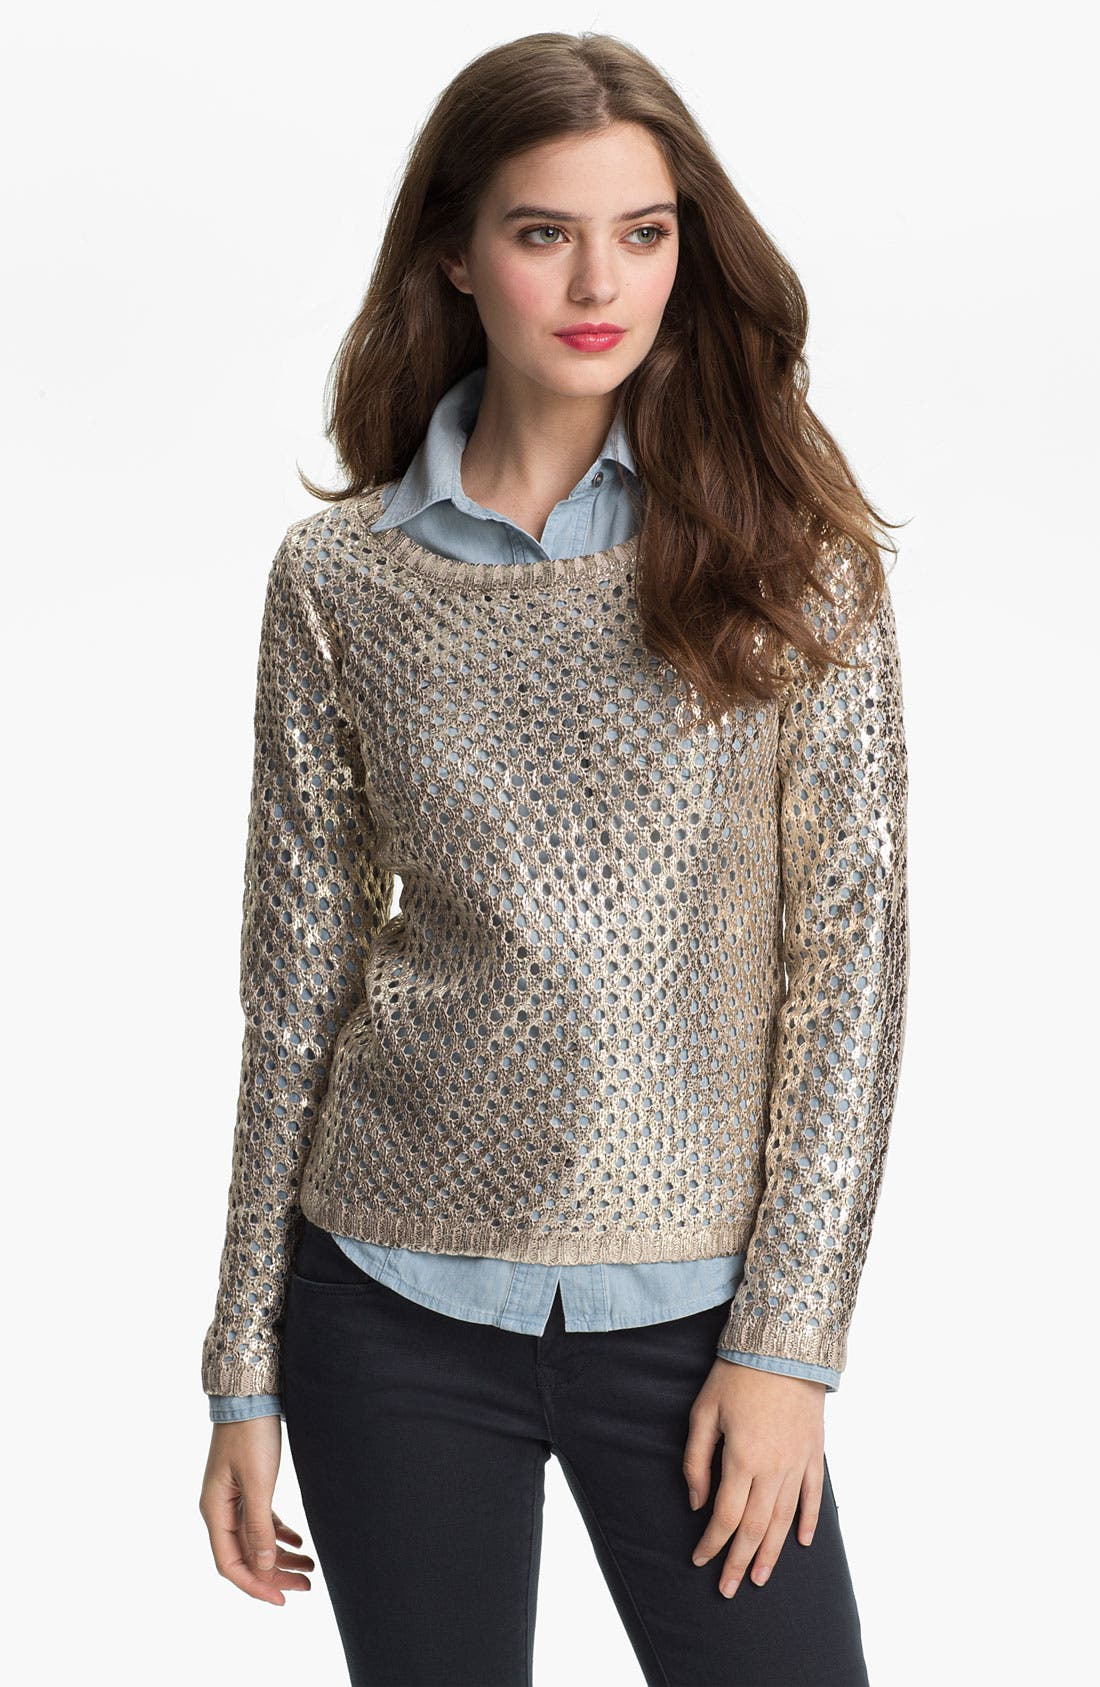 Alternate Image 1 Selected - Olive & Oak Coated Open Stitch Sweater (Online Exclusive)